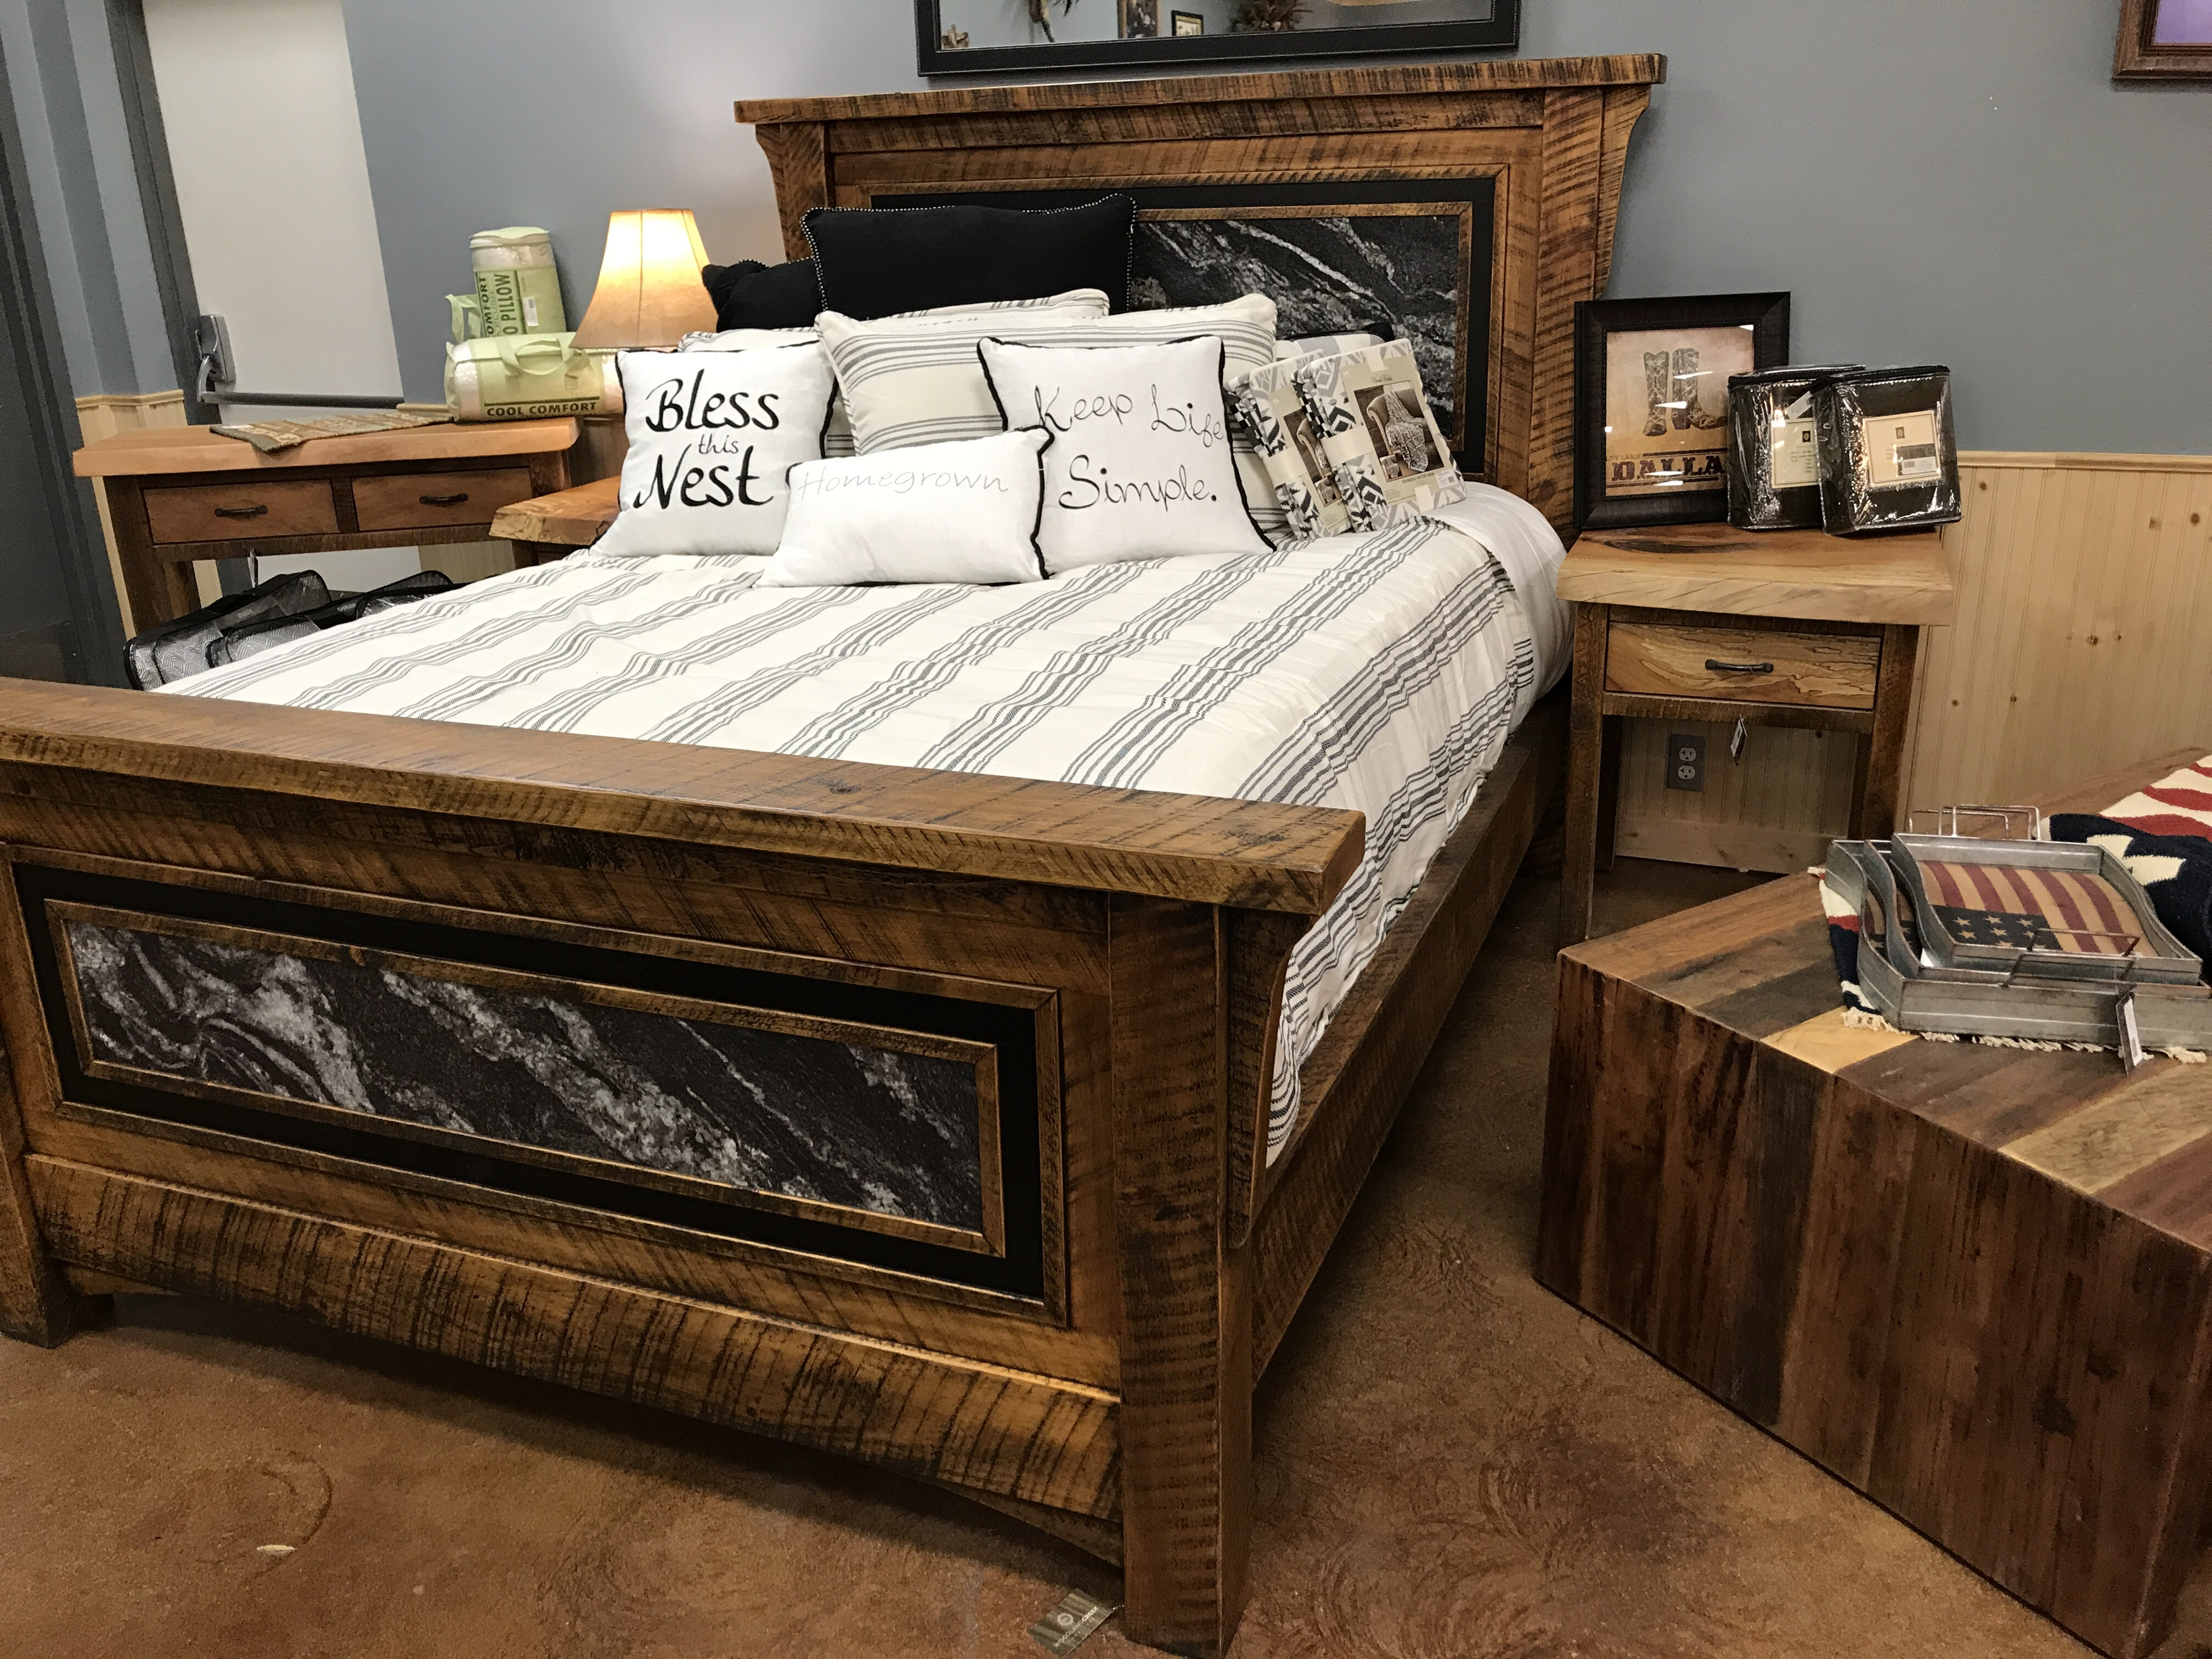 Woodland Creek Furniture 4221 S 68th East Ave Tulsa Ok 74145 Yp Com